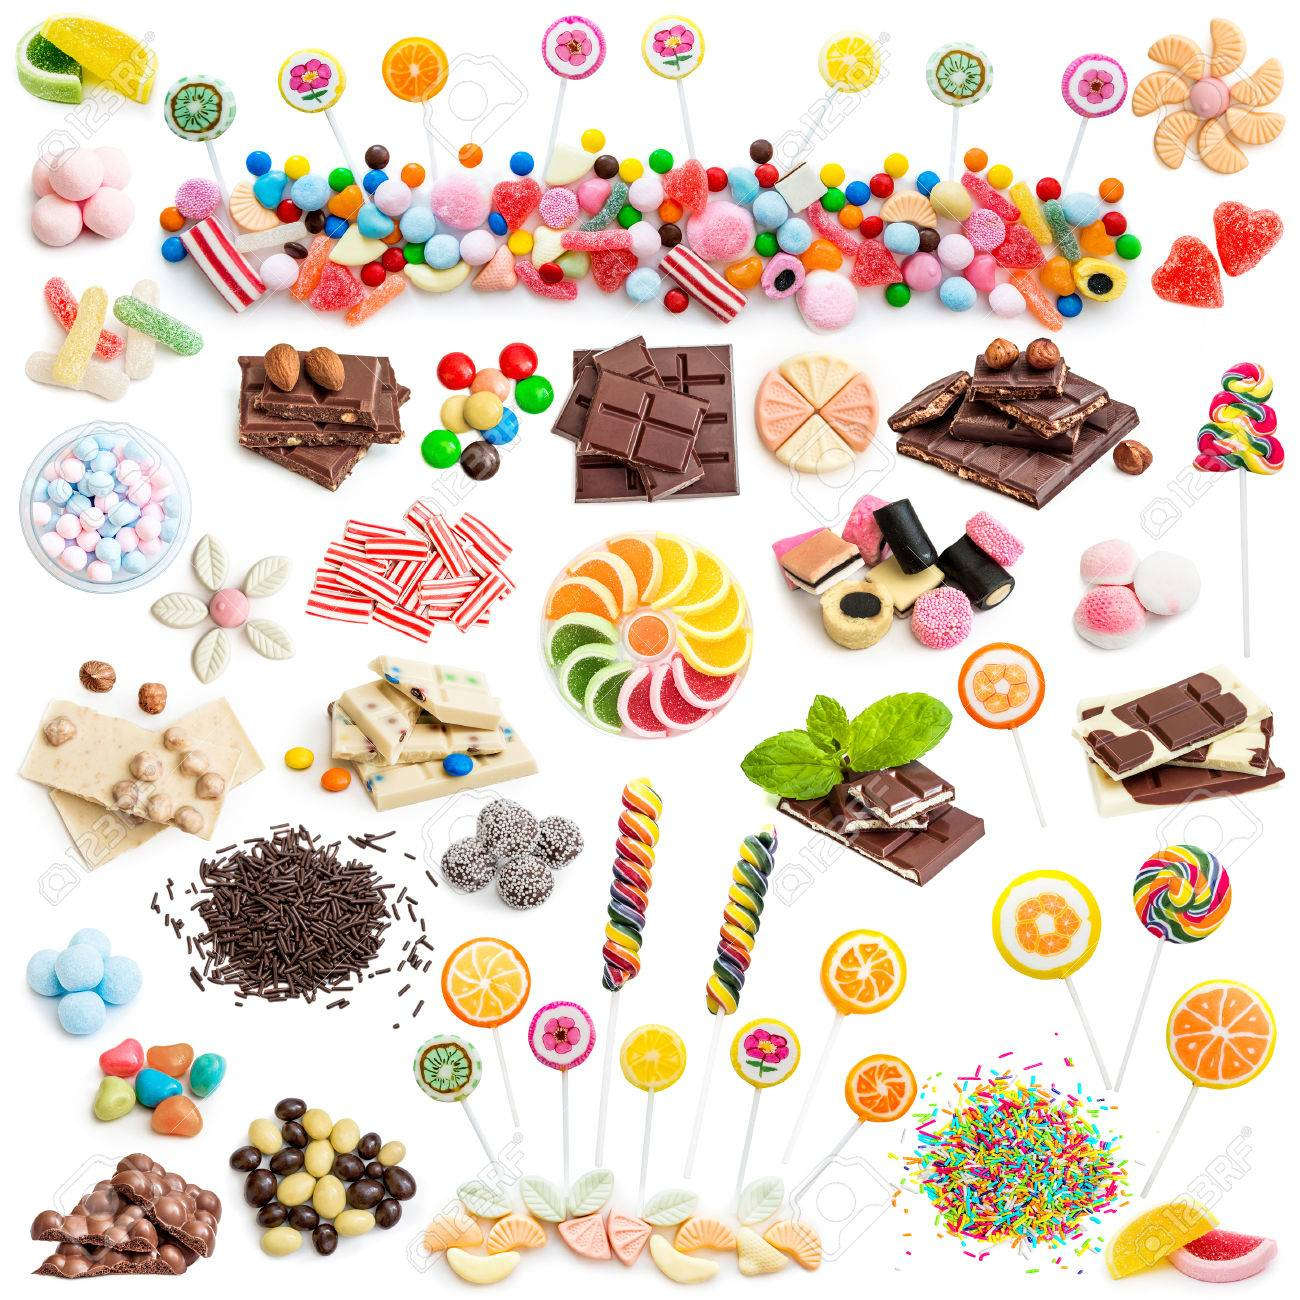 Collage of white and milk chocolate and candies isolated on white background - 41508897